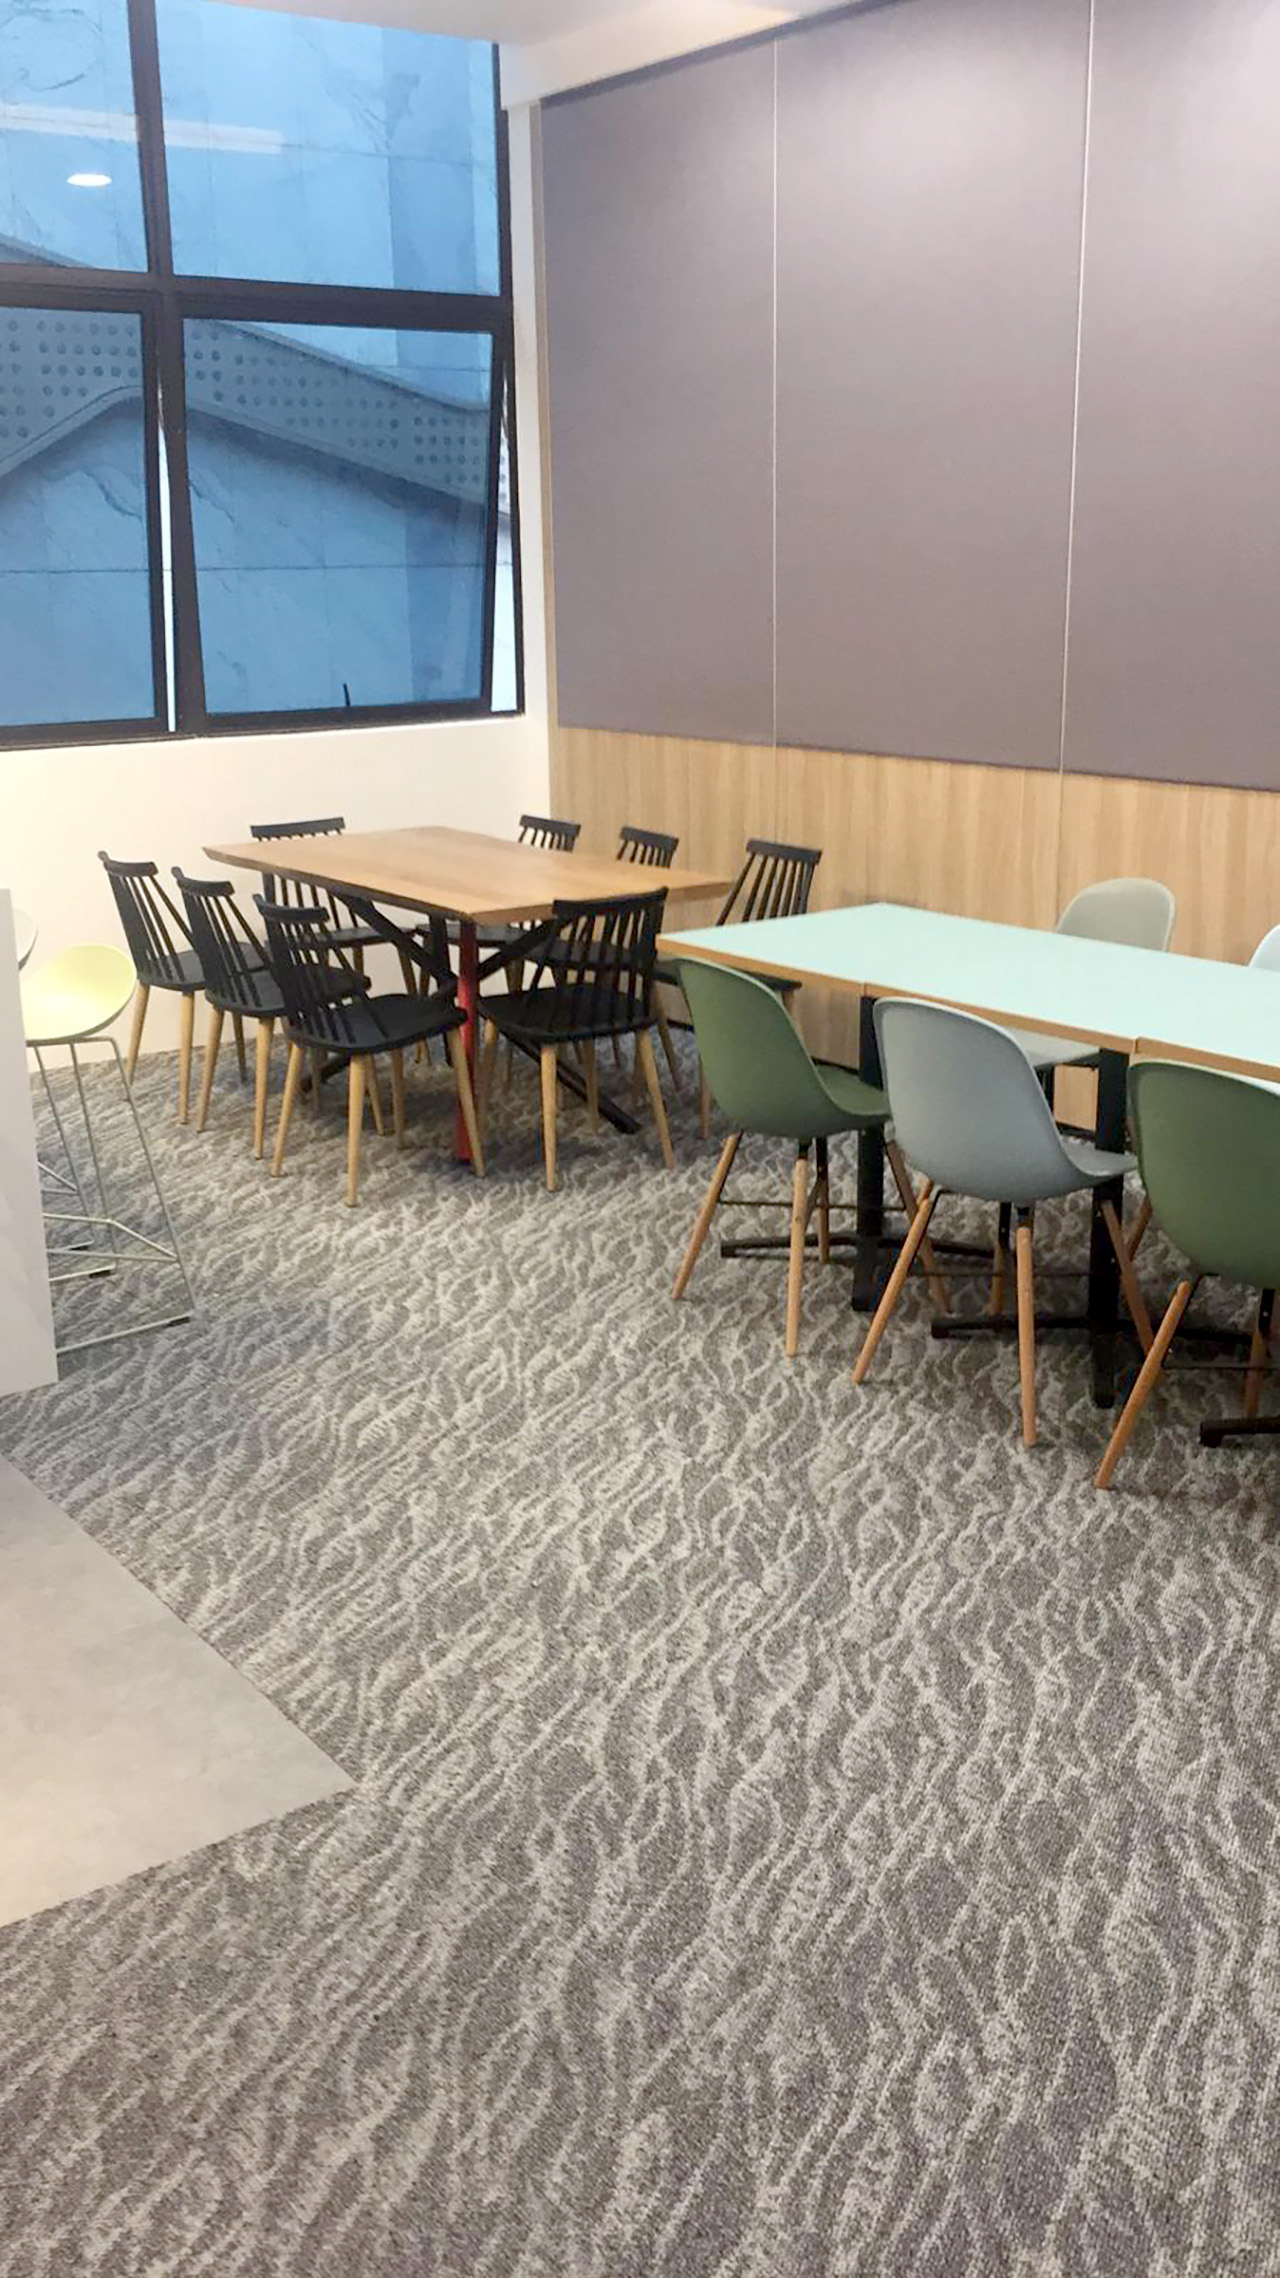 ECON Healthcare Group - Changi Road | Product Seen: [Adik – Wood Side Chair, Choyu Chair & Customised Laminate tabletop + Grit Non-foldable Table Base]